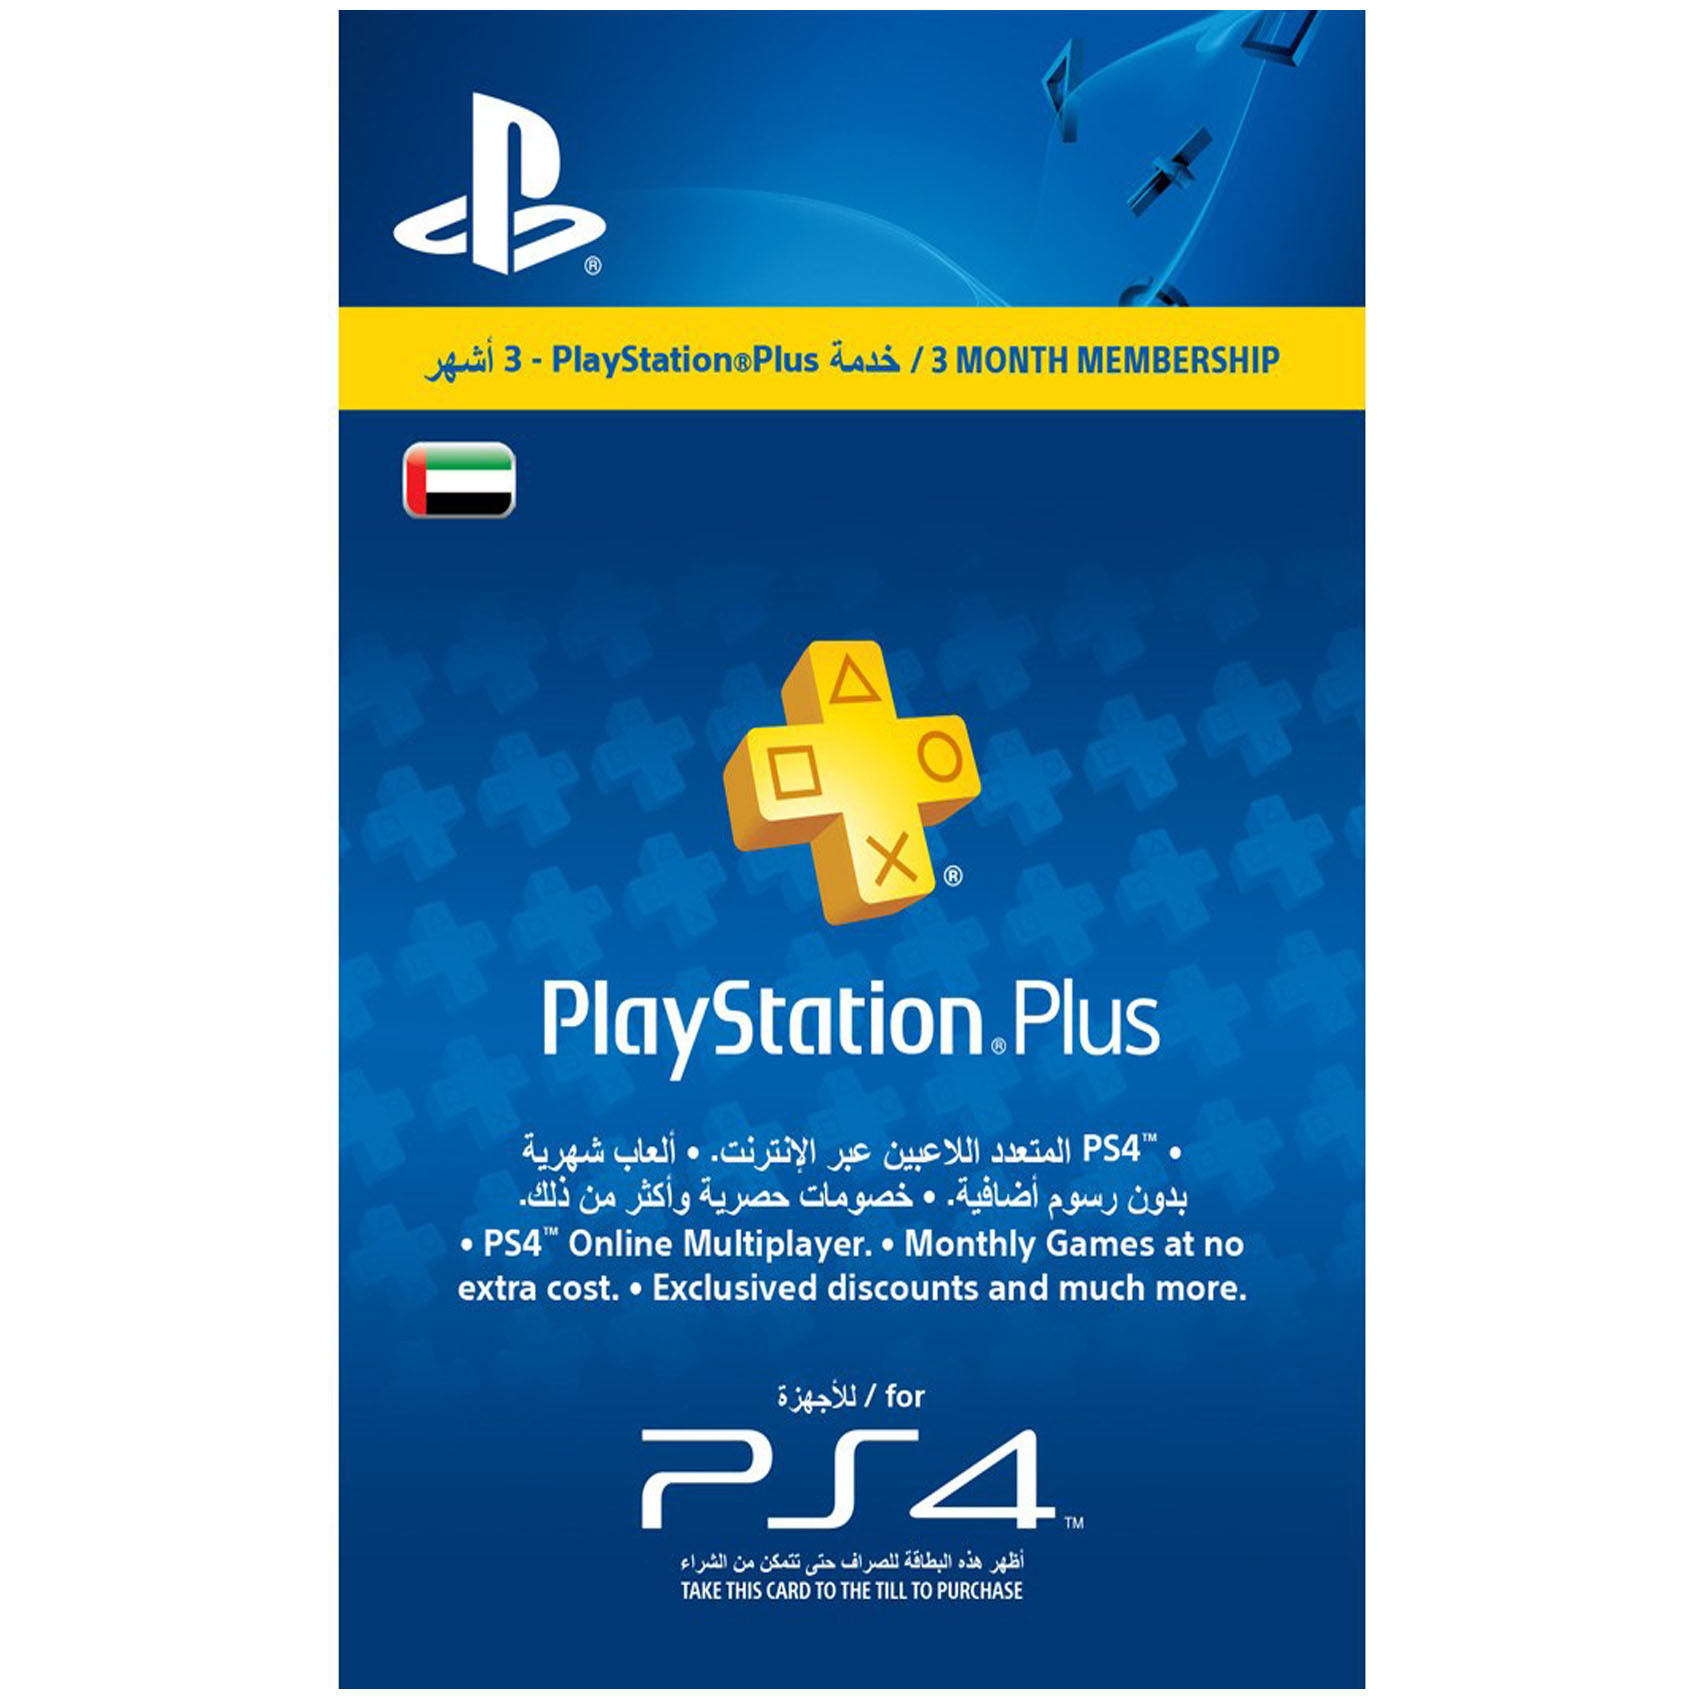 SONY PS PLUS 90 DAYS MBR CARD